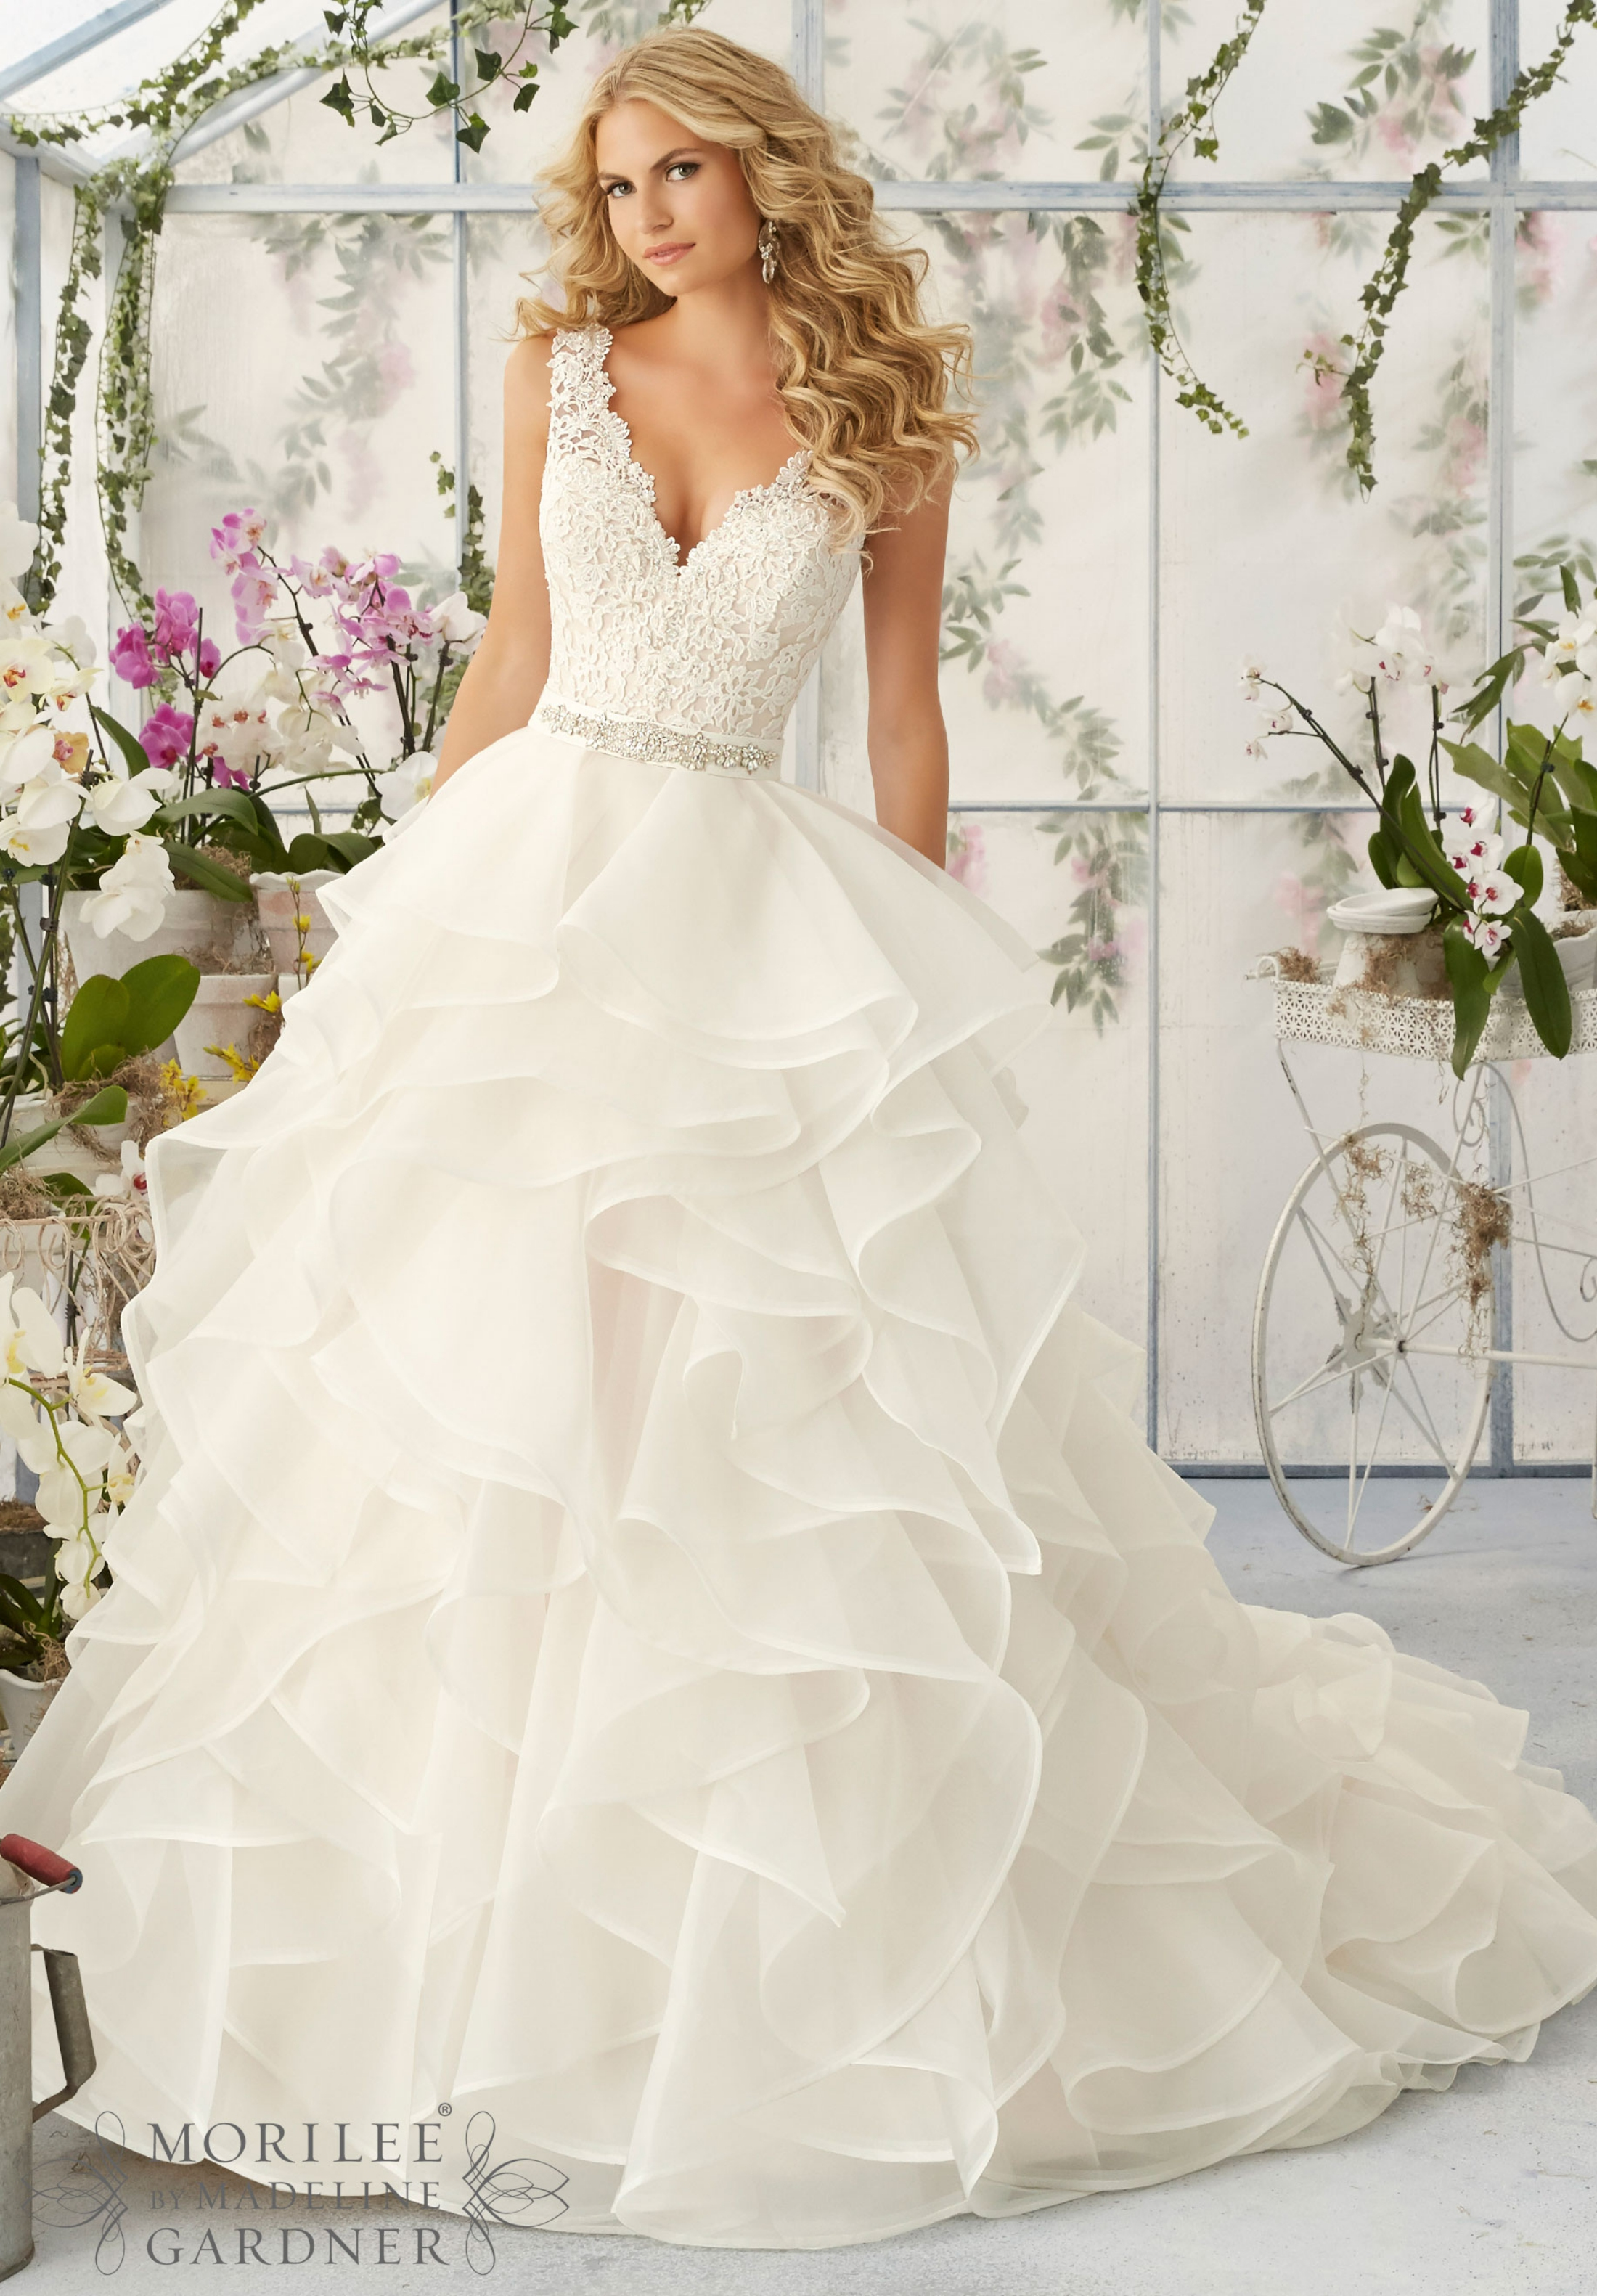 14 Cheap Wedding Dresses Under 100 - GetFashionIdeas.com ...